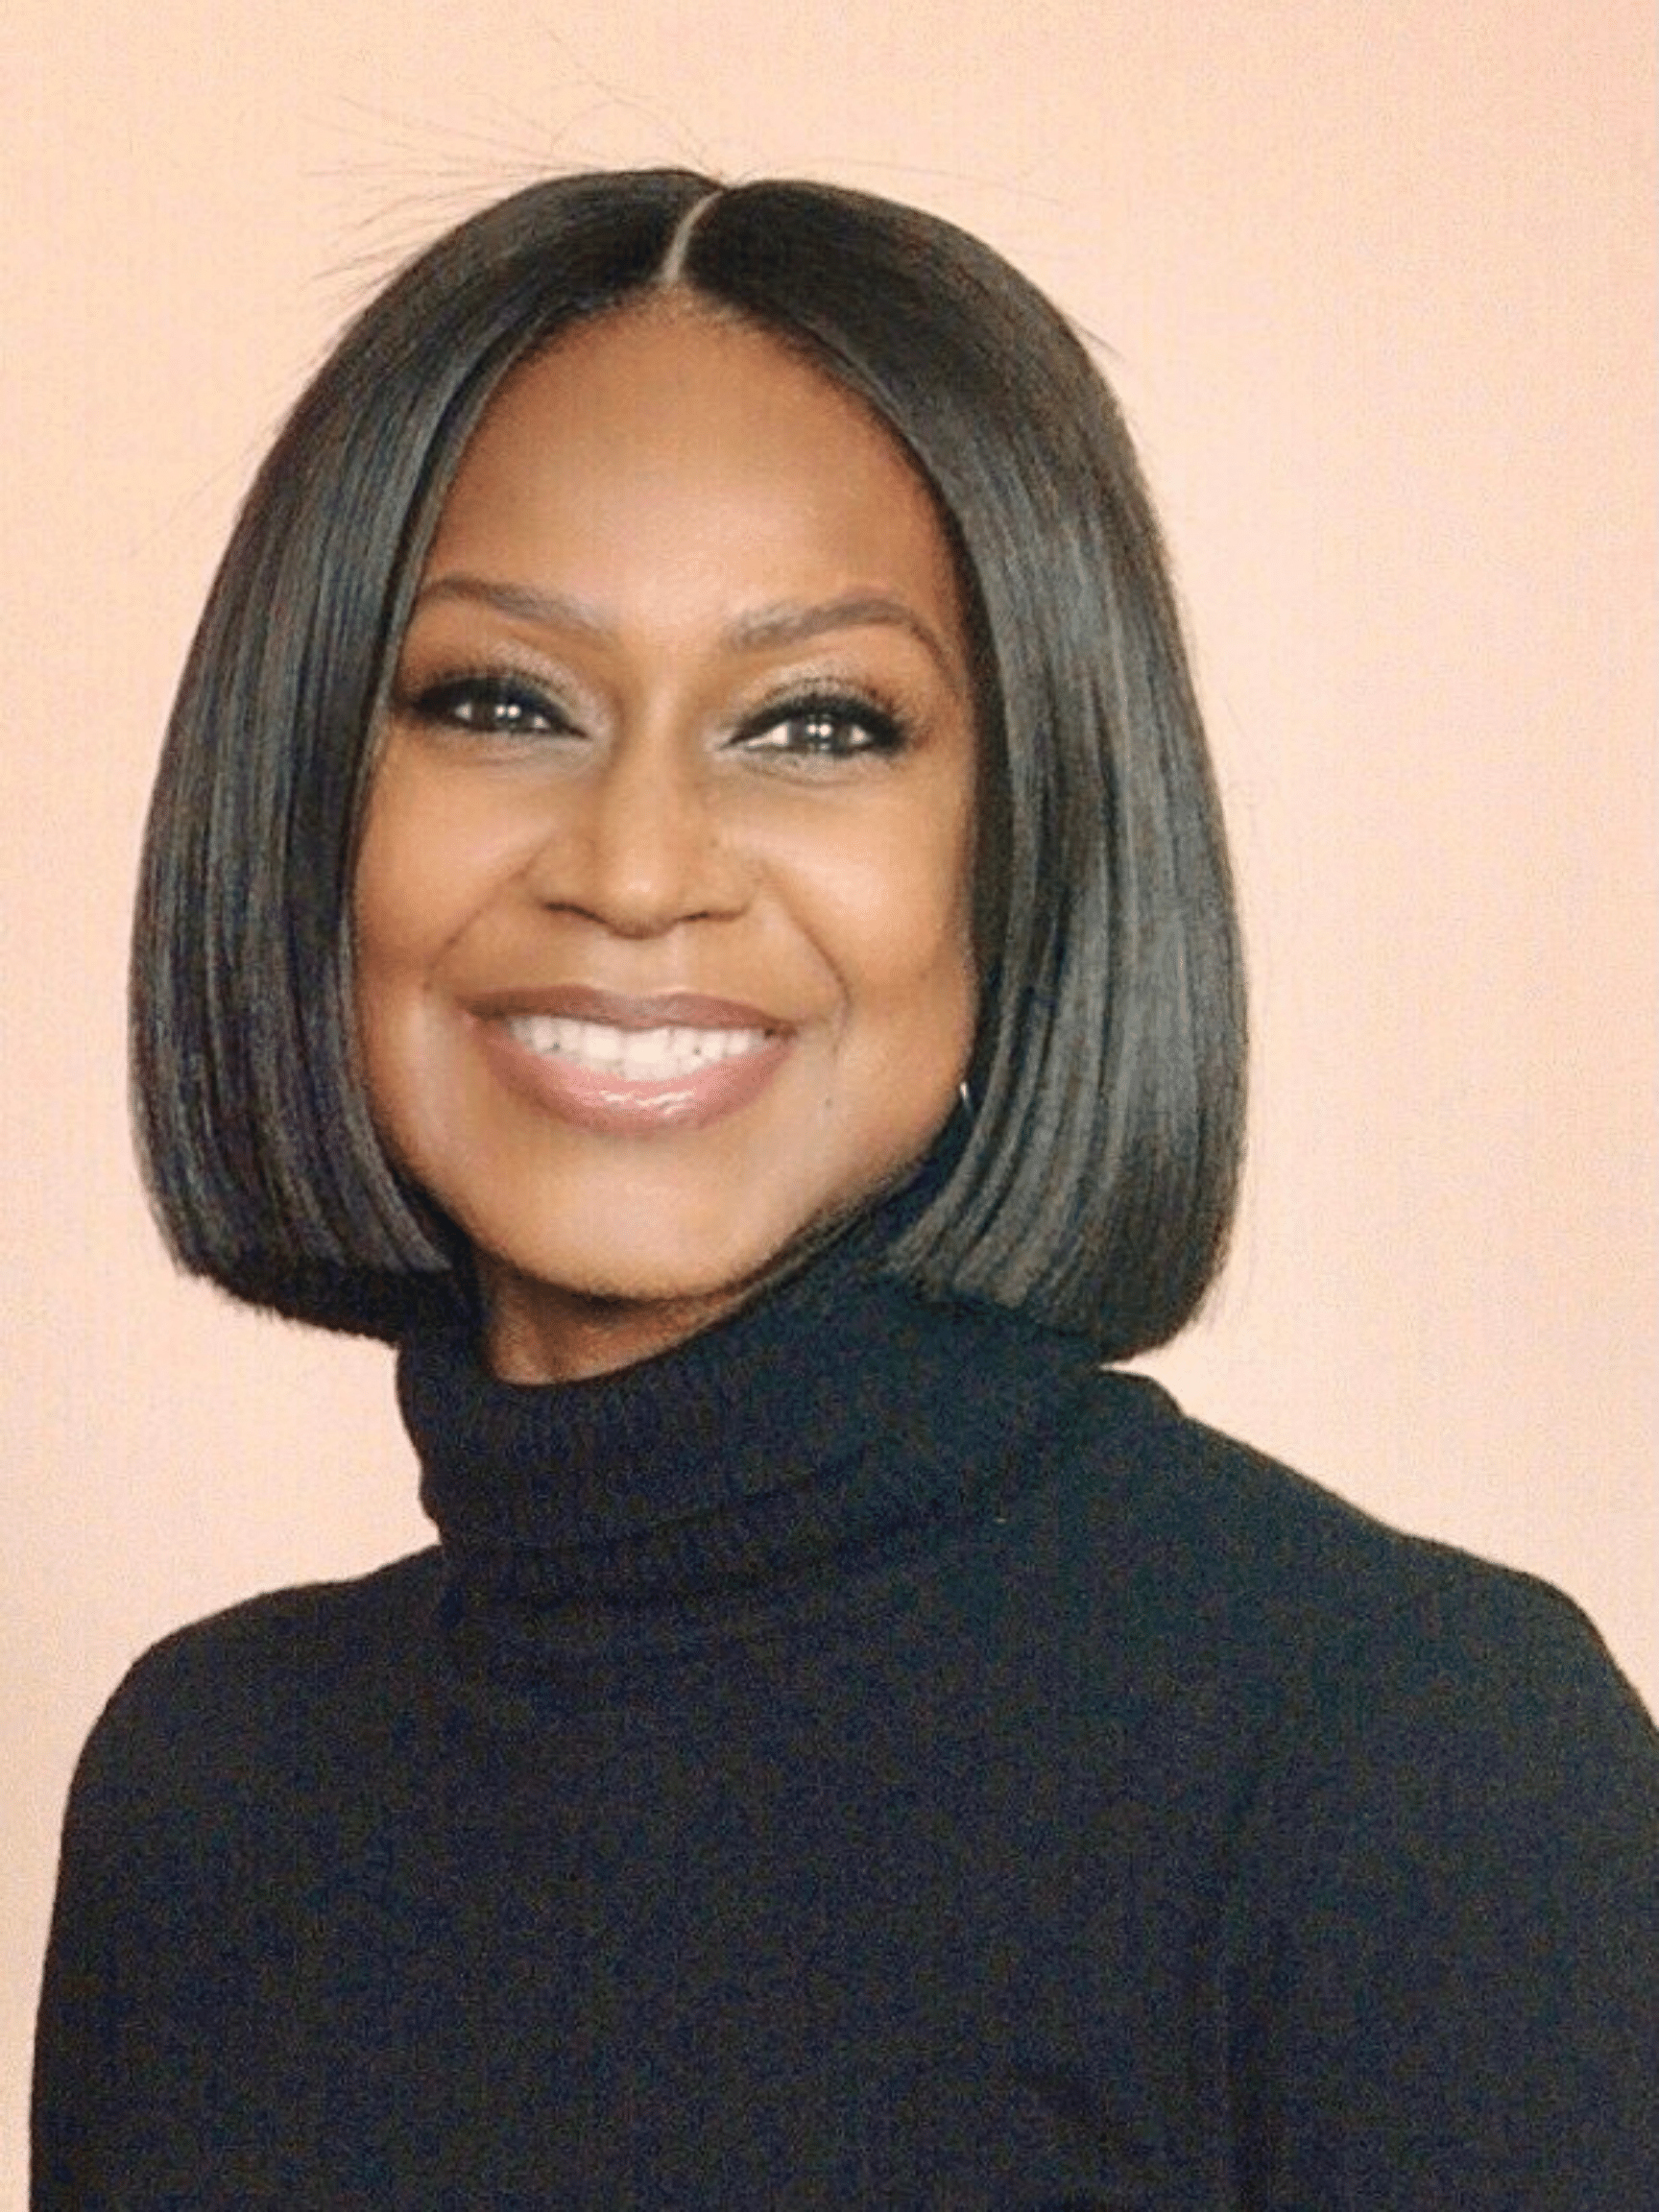 Headshot of Gina Copeland